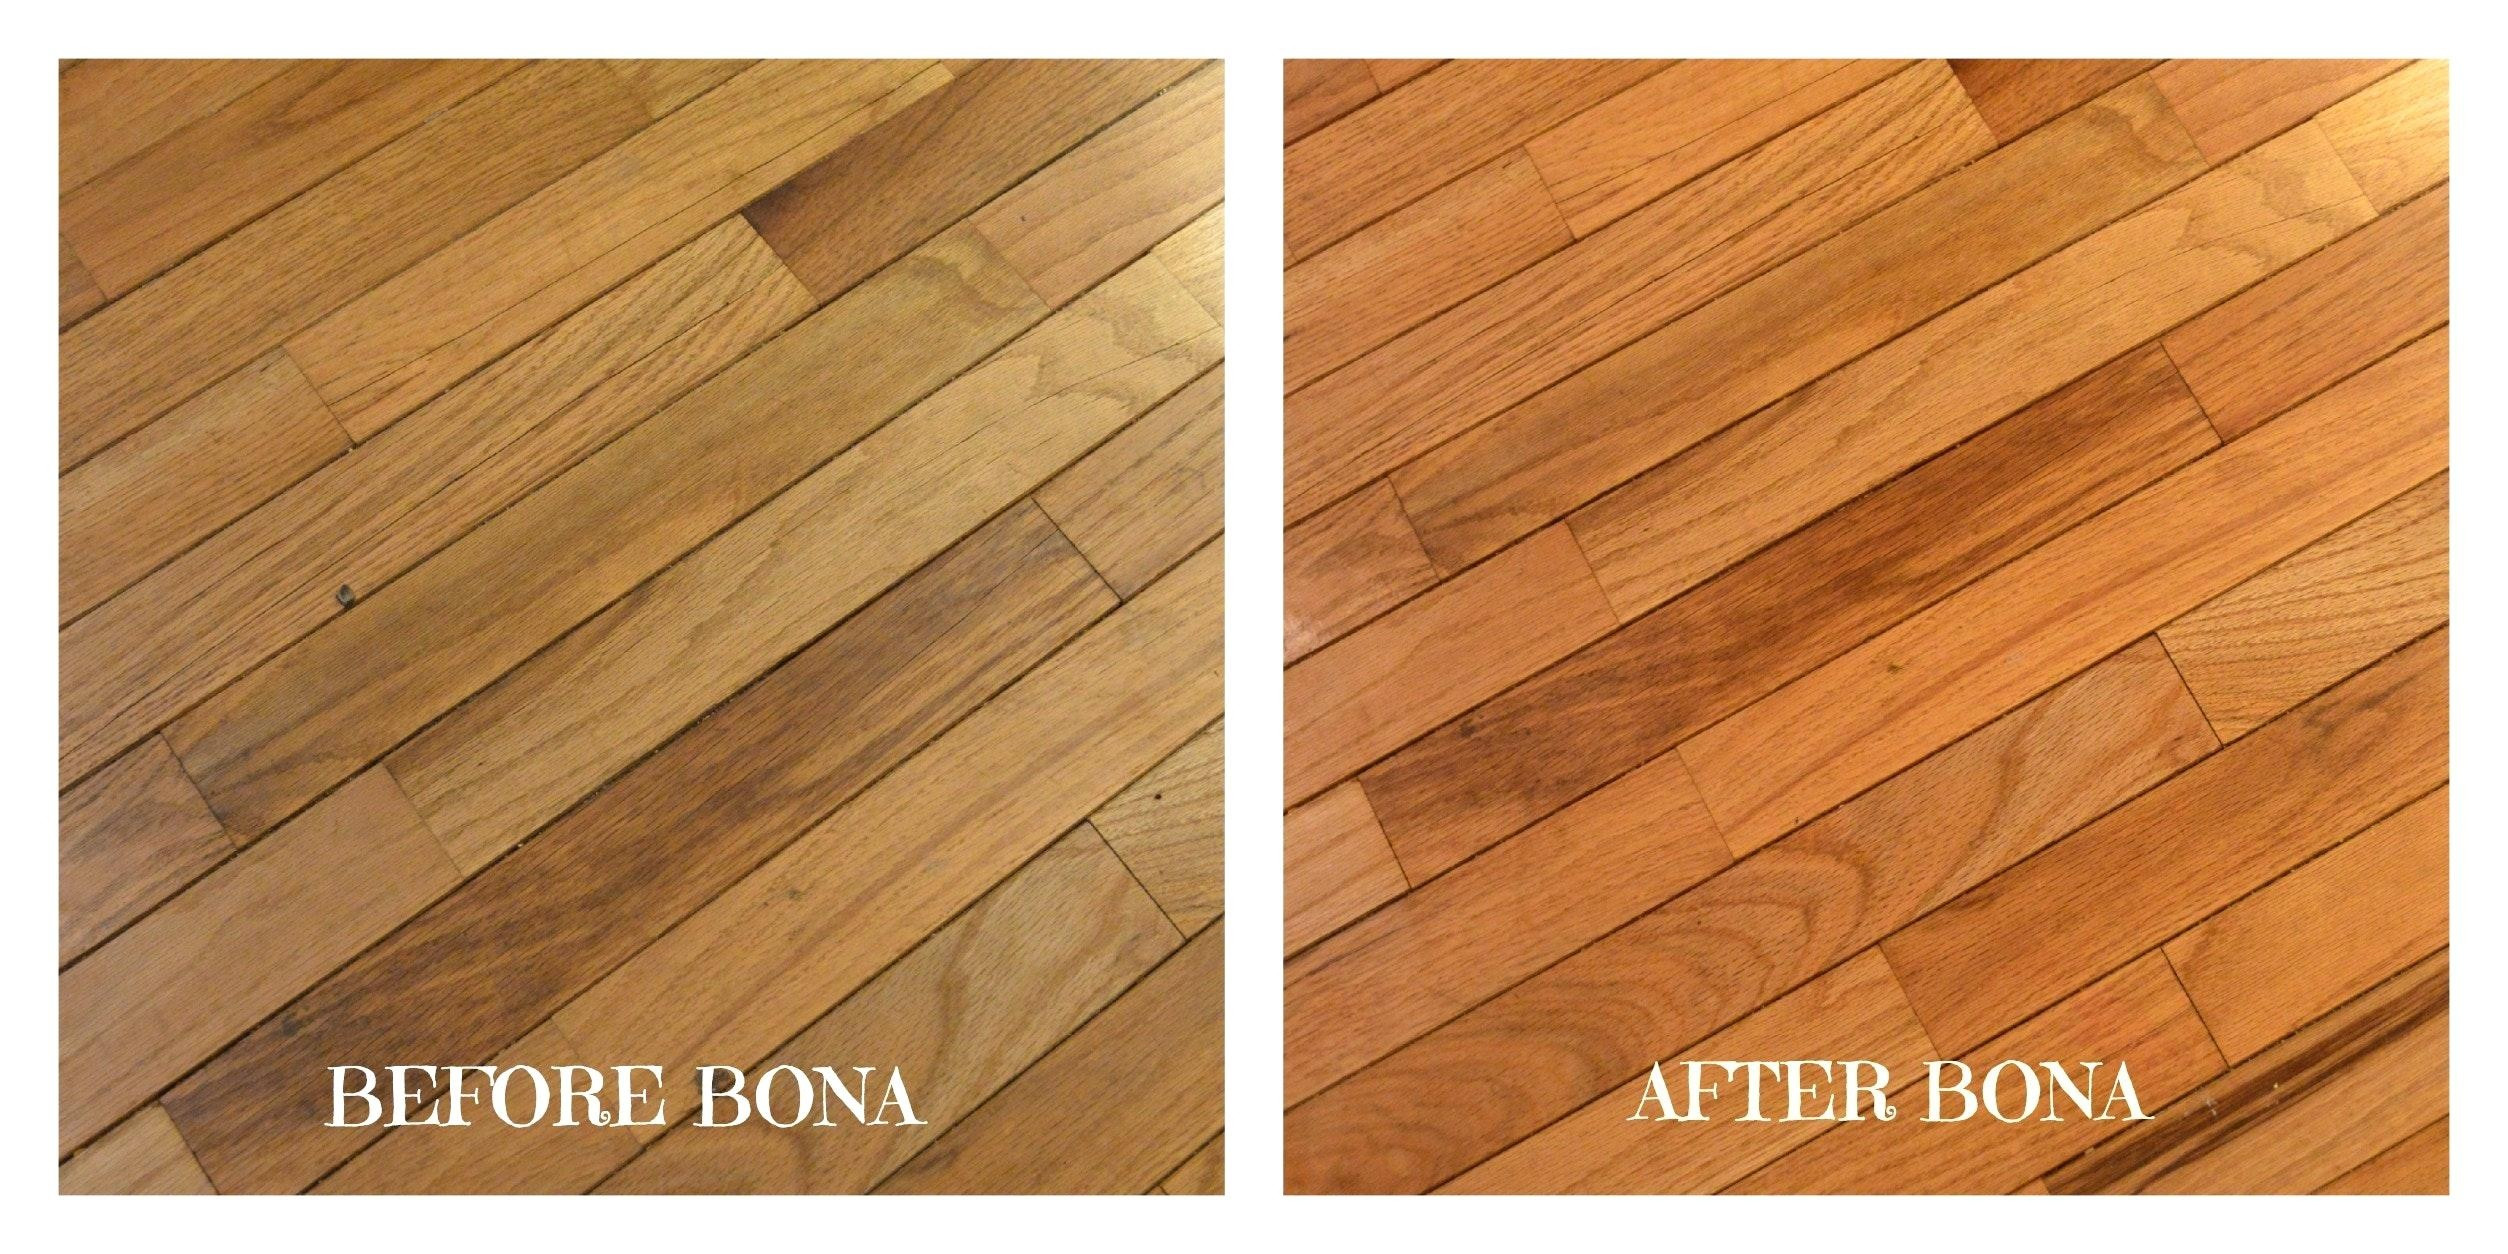 what does hand scraped hardwood flooring mean of best hand scraped hardwood flooring reviews collection engineered pertaining to best hand scraped hardwood flooring reviews collection hardwood floor cleaning hardwood floor polish reviews how much